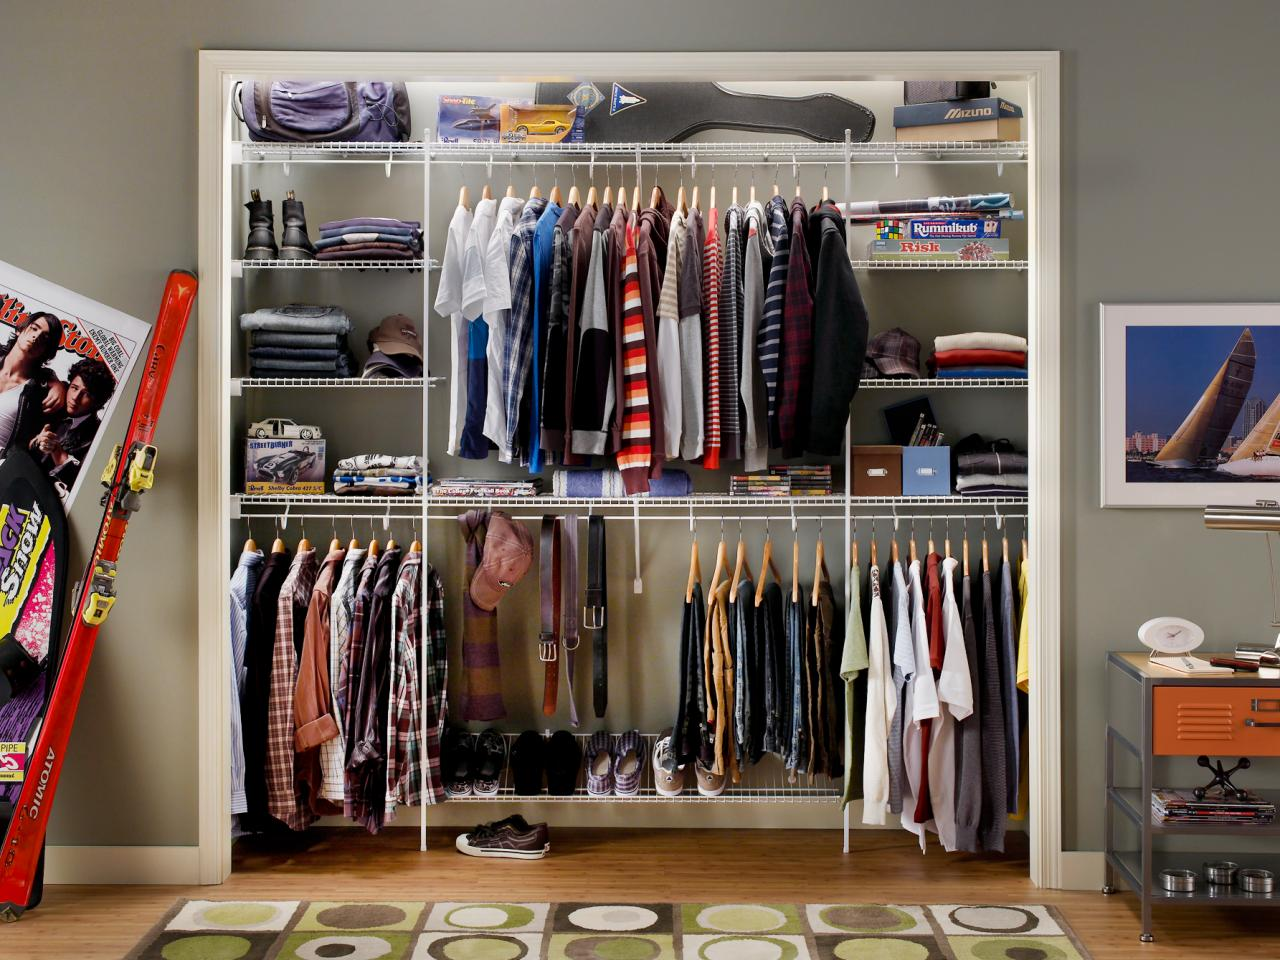 Closet Organizing Ideas Mesmerizing Small Closet Organization Ideas Pictures Options & Tips  Hgtv 2017